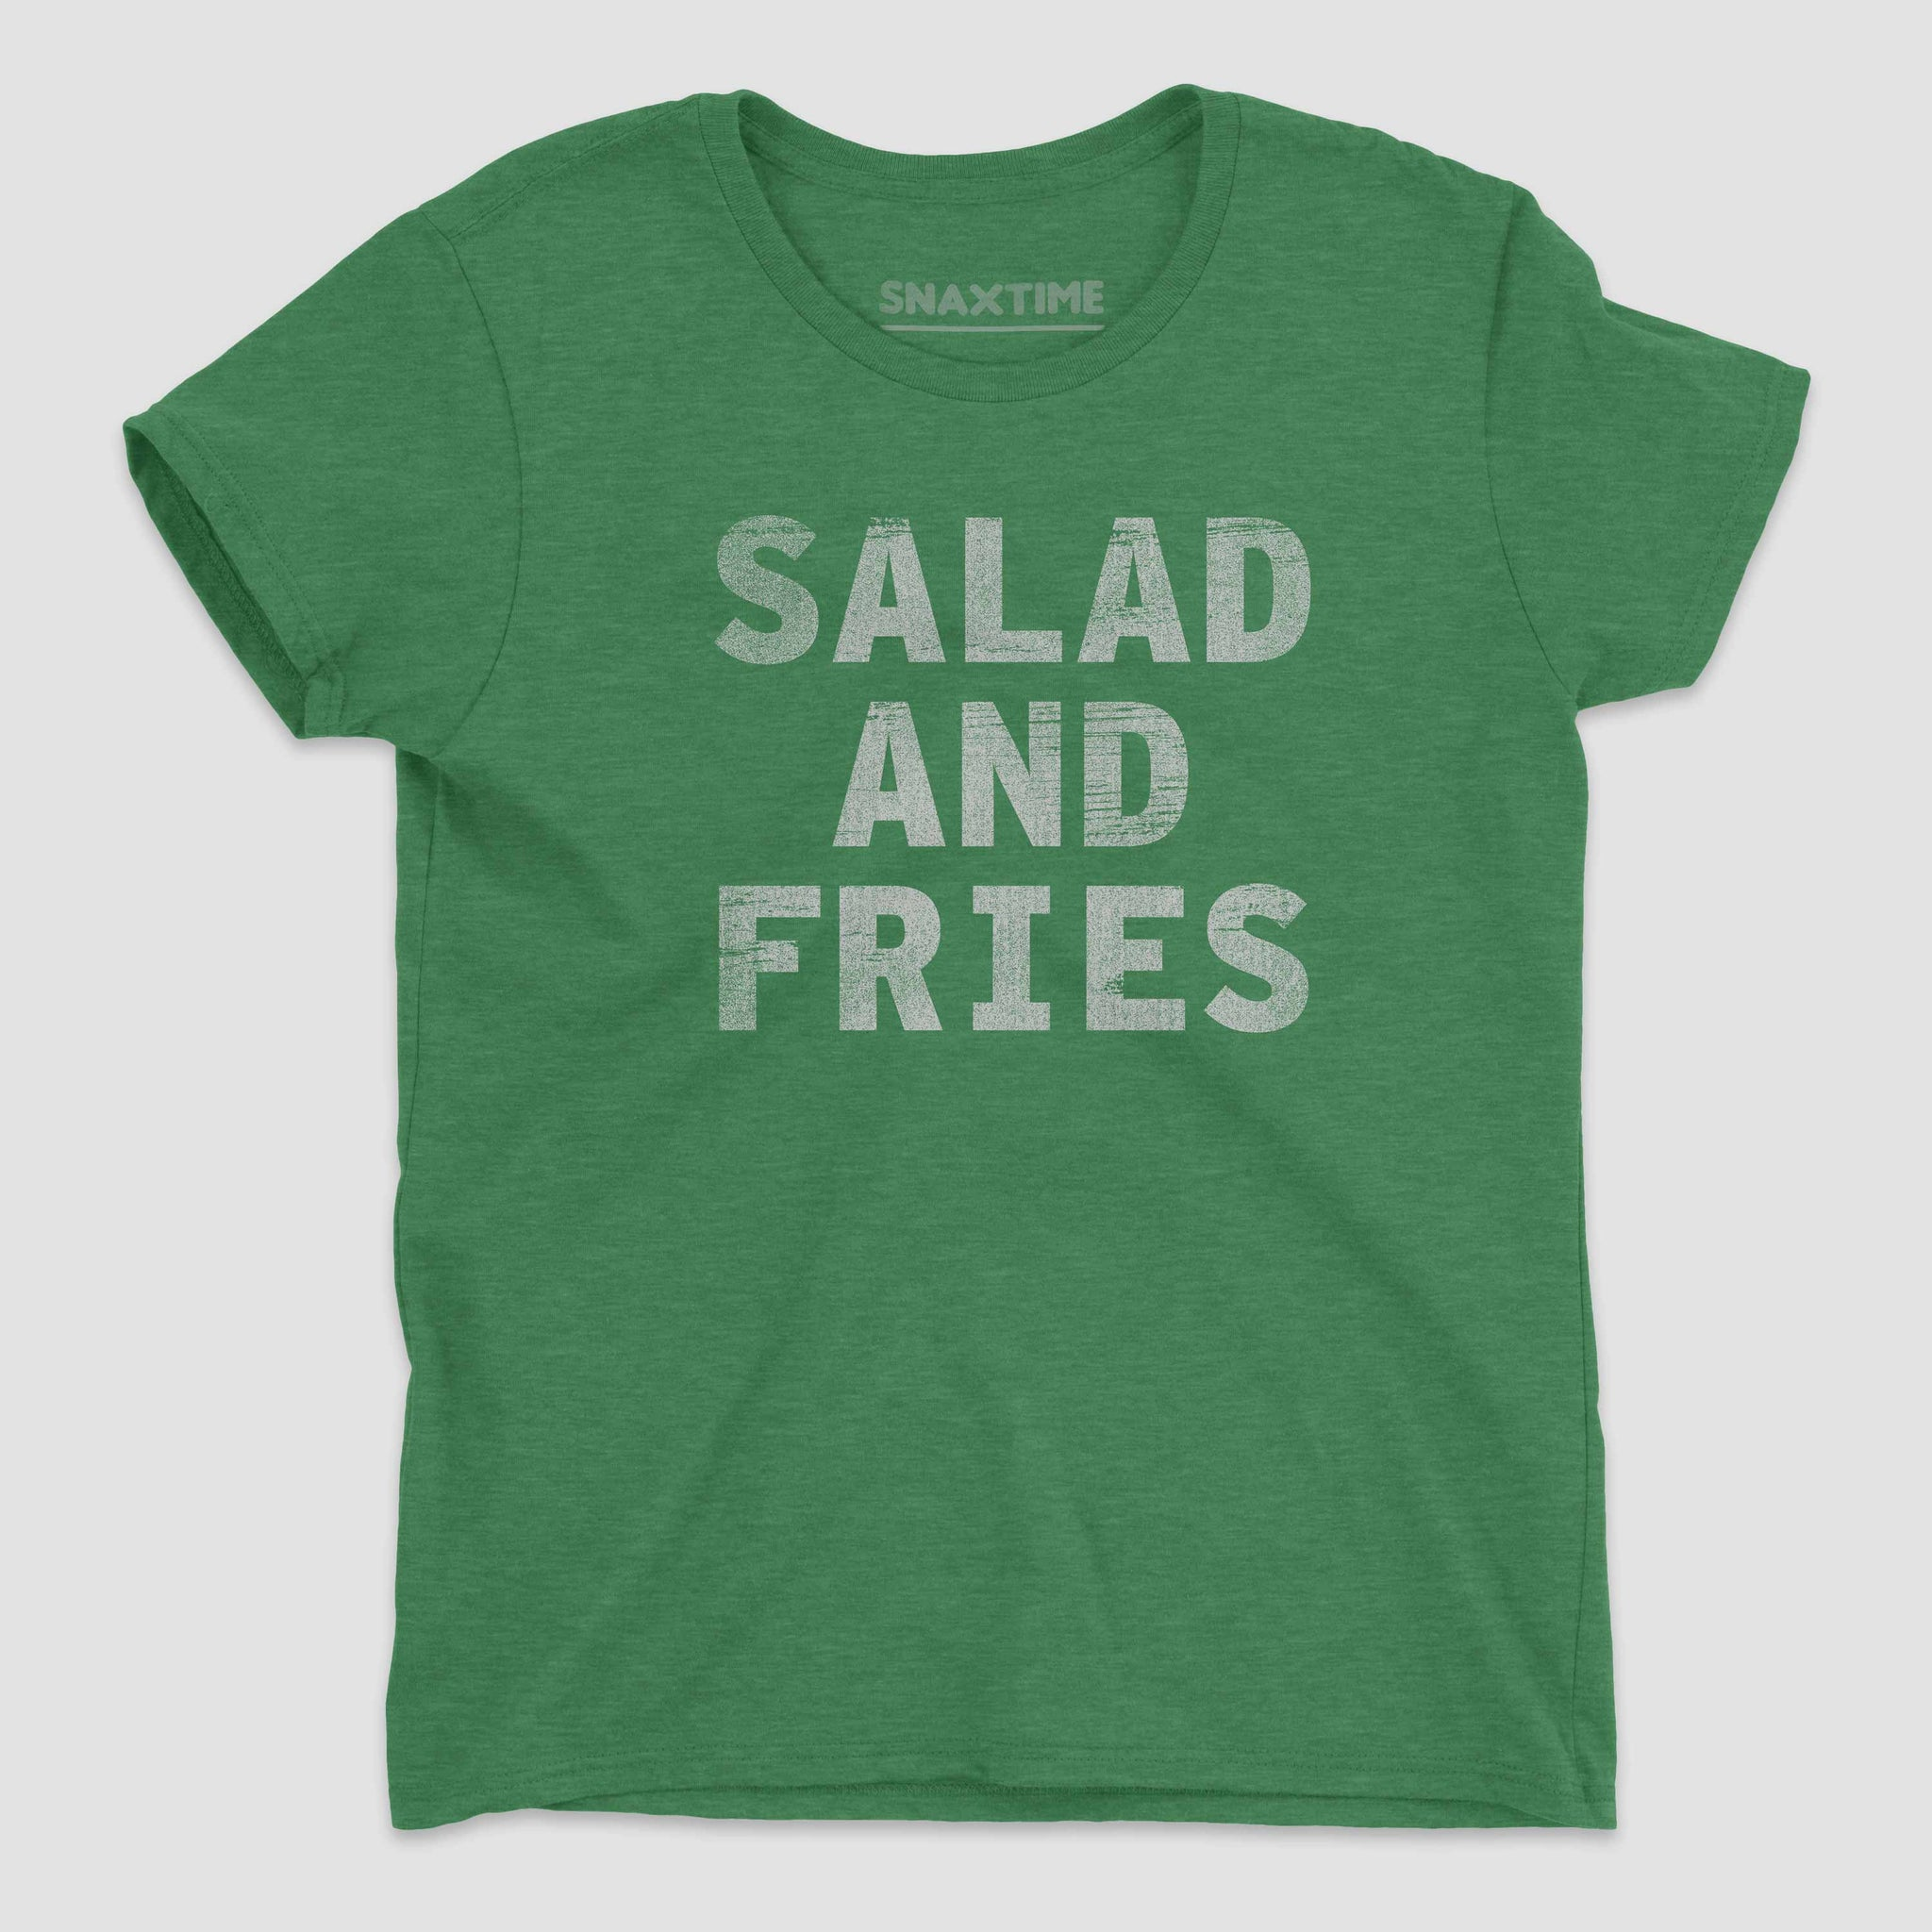 Salad and Fries Women's Graphic T-Shirt